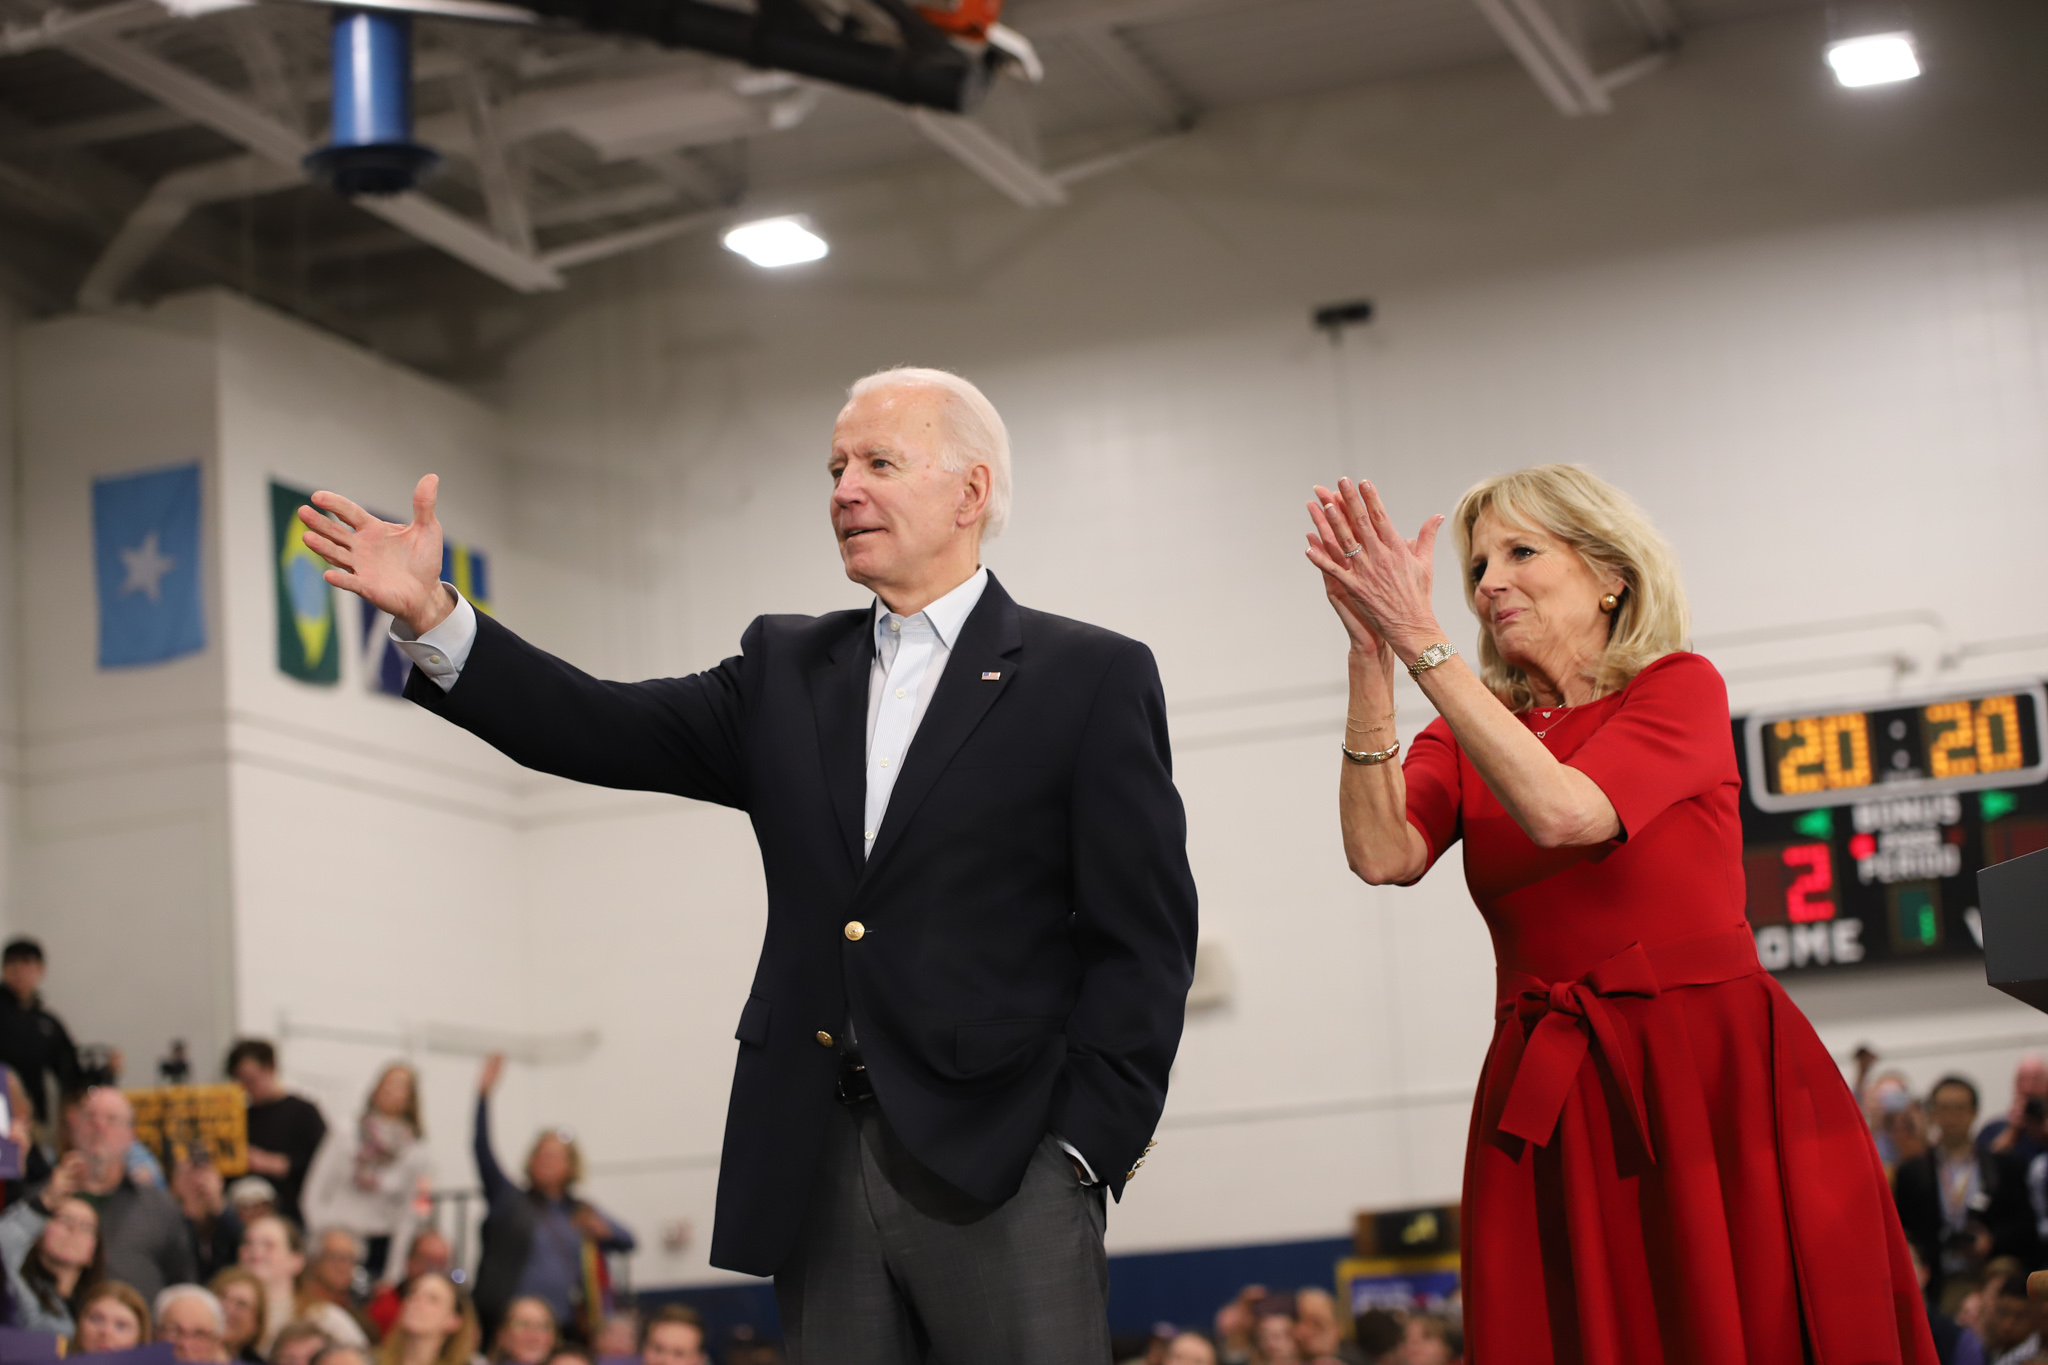 The Bidens at the campaign event. (Brita Hunegs, 14 East)